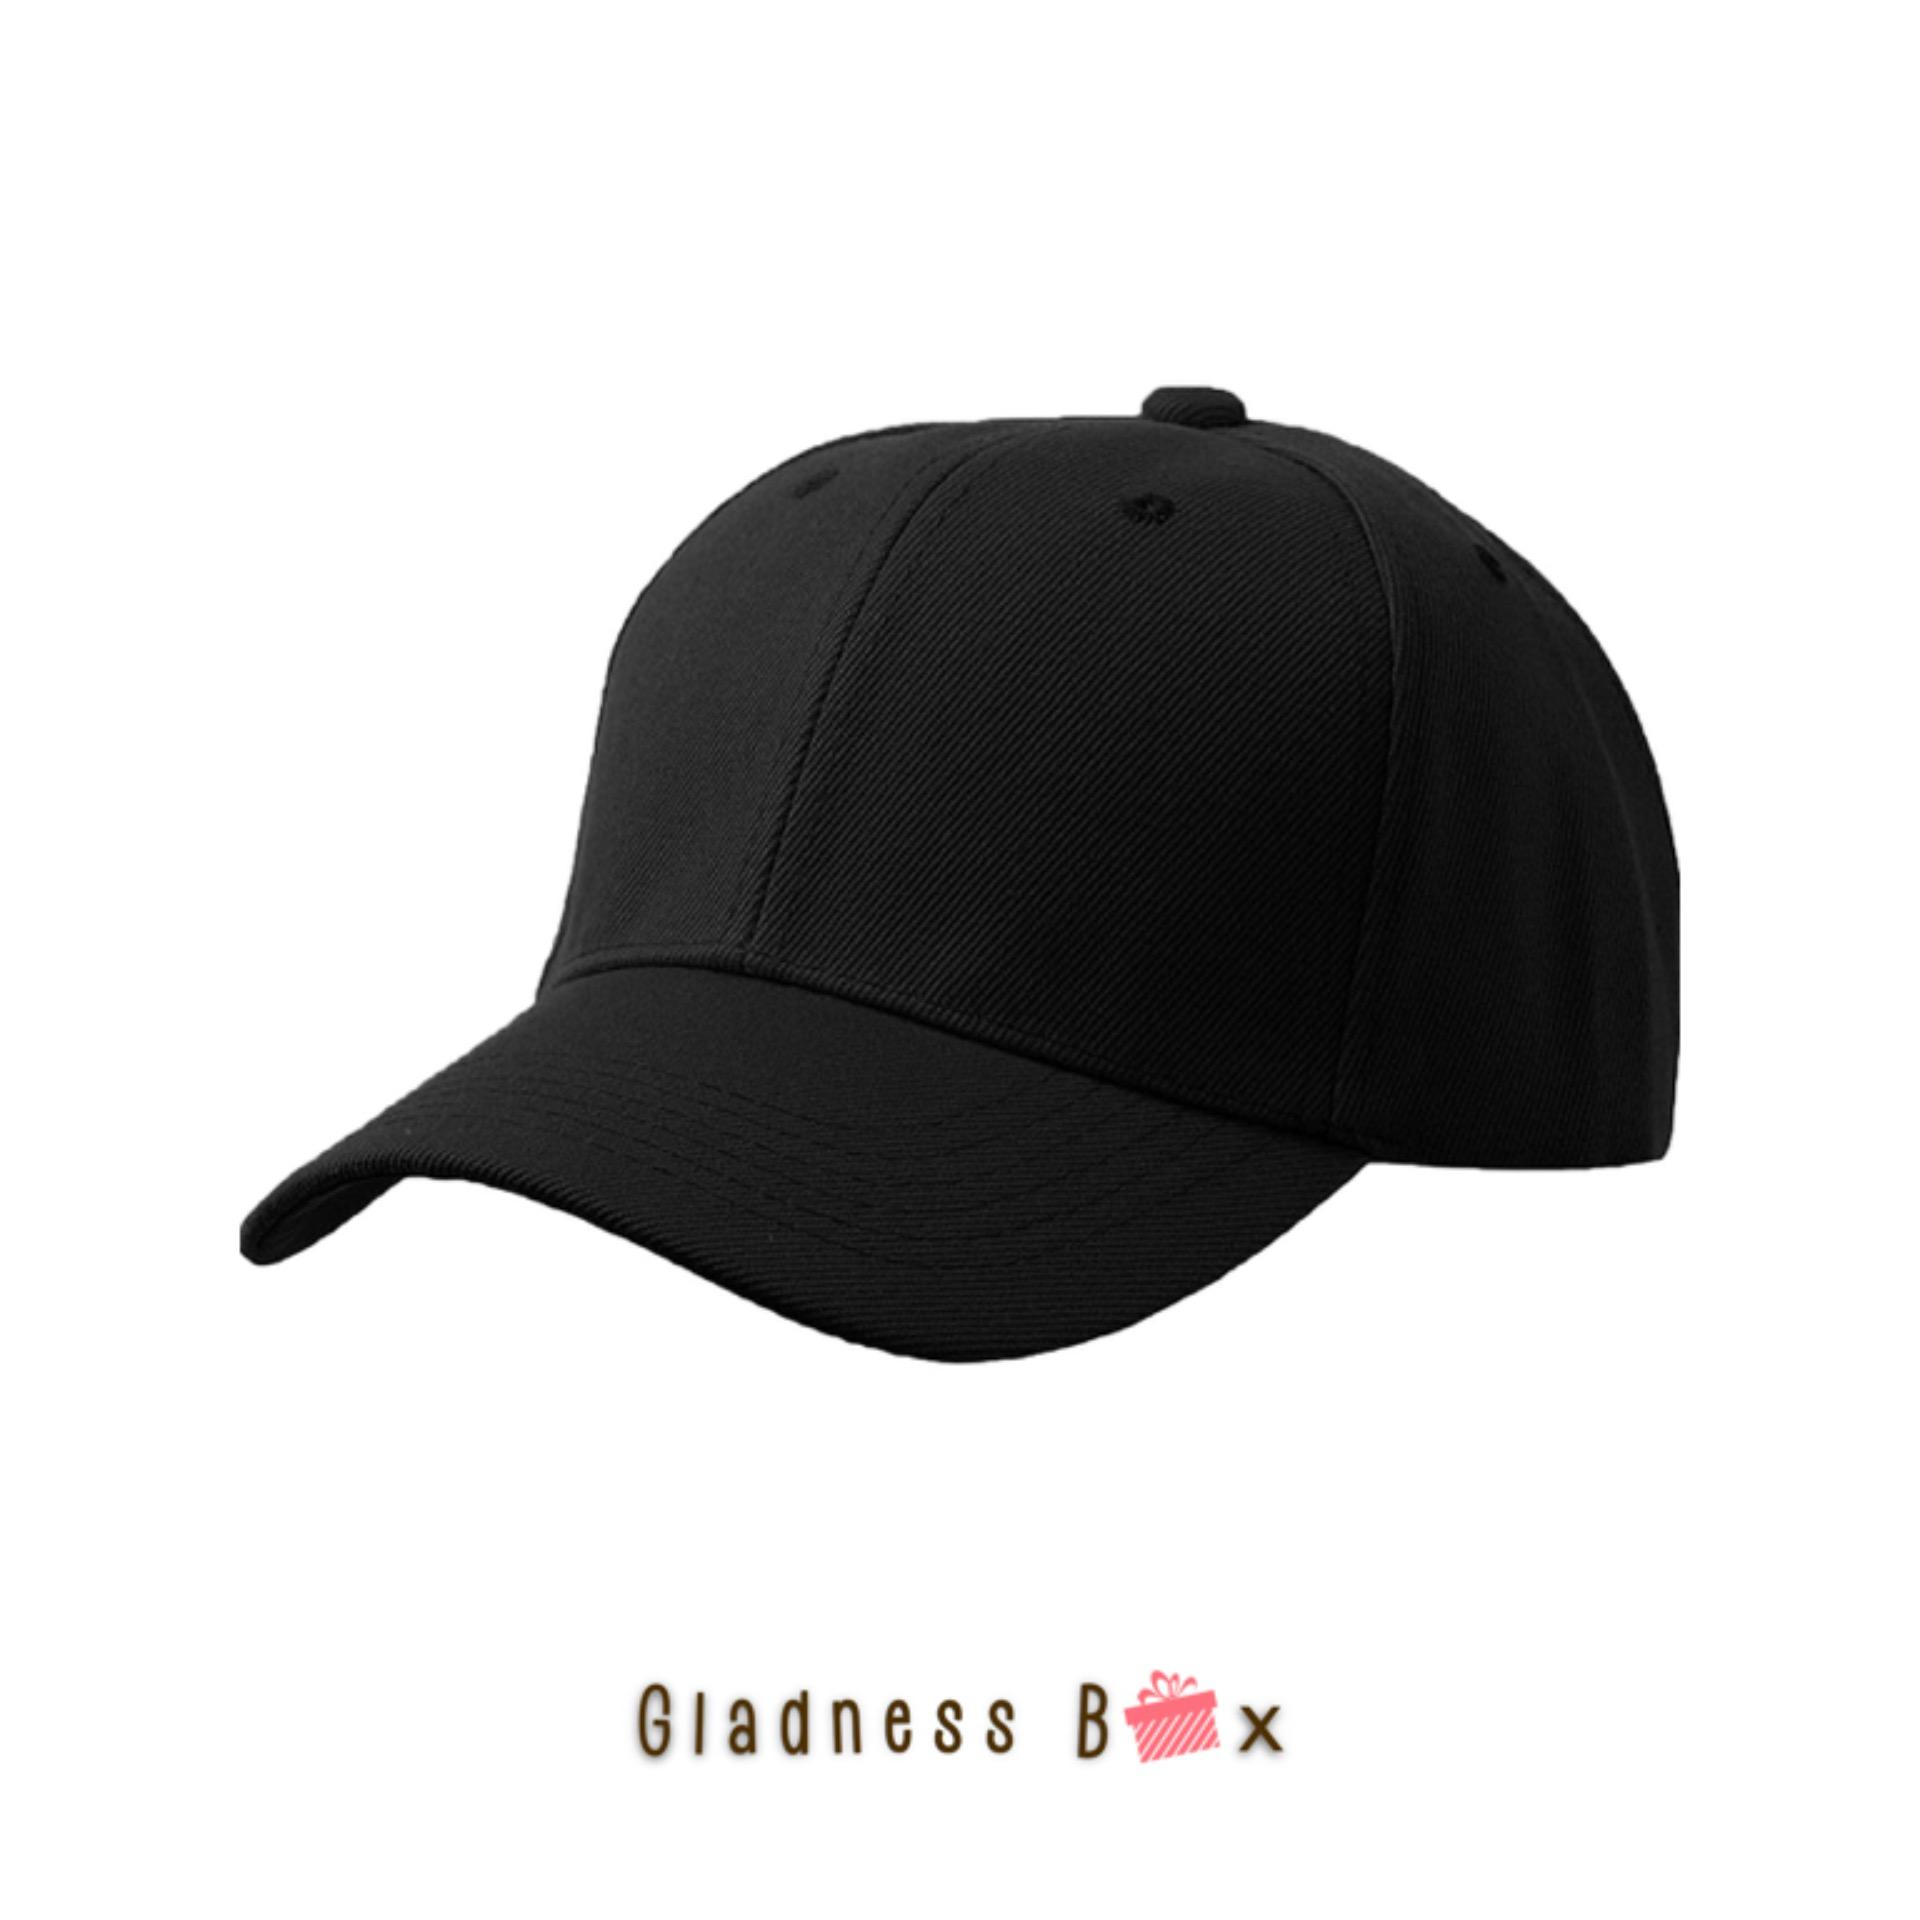 7d7d9dc5 Gladness Box High Quality Plain Baseball Cap for Men/Women/Unisex